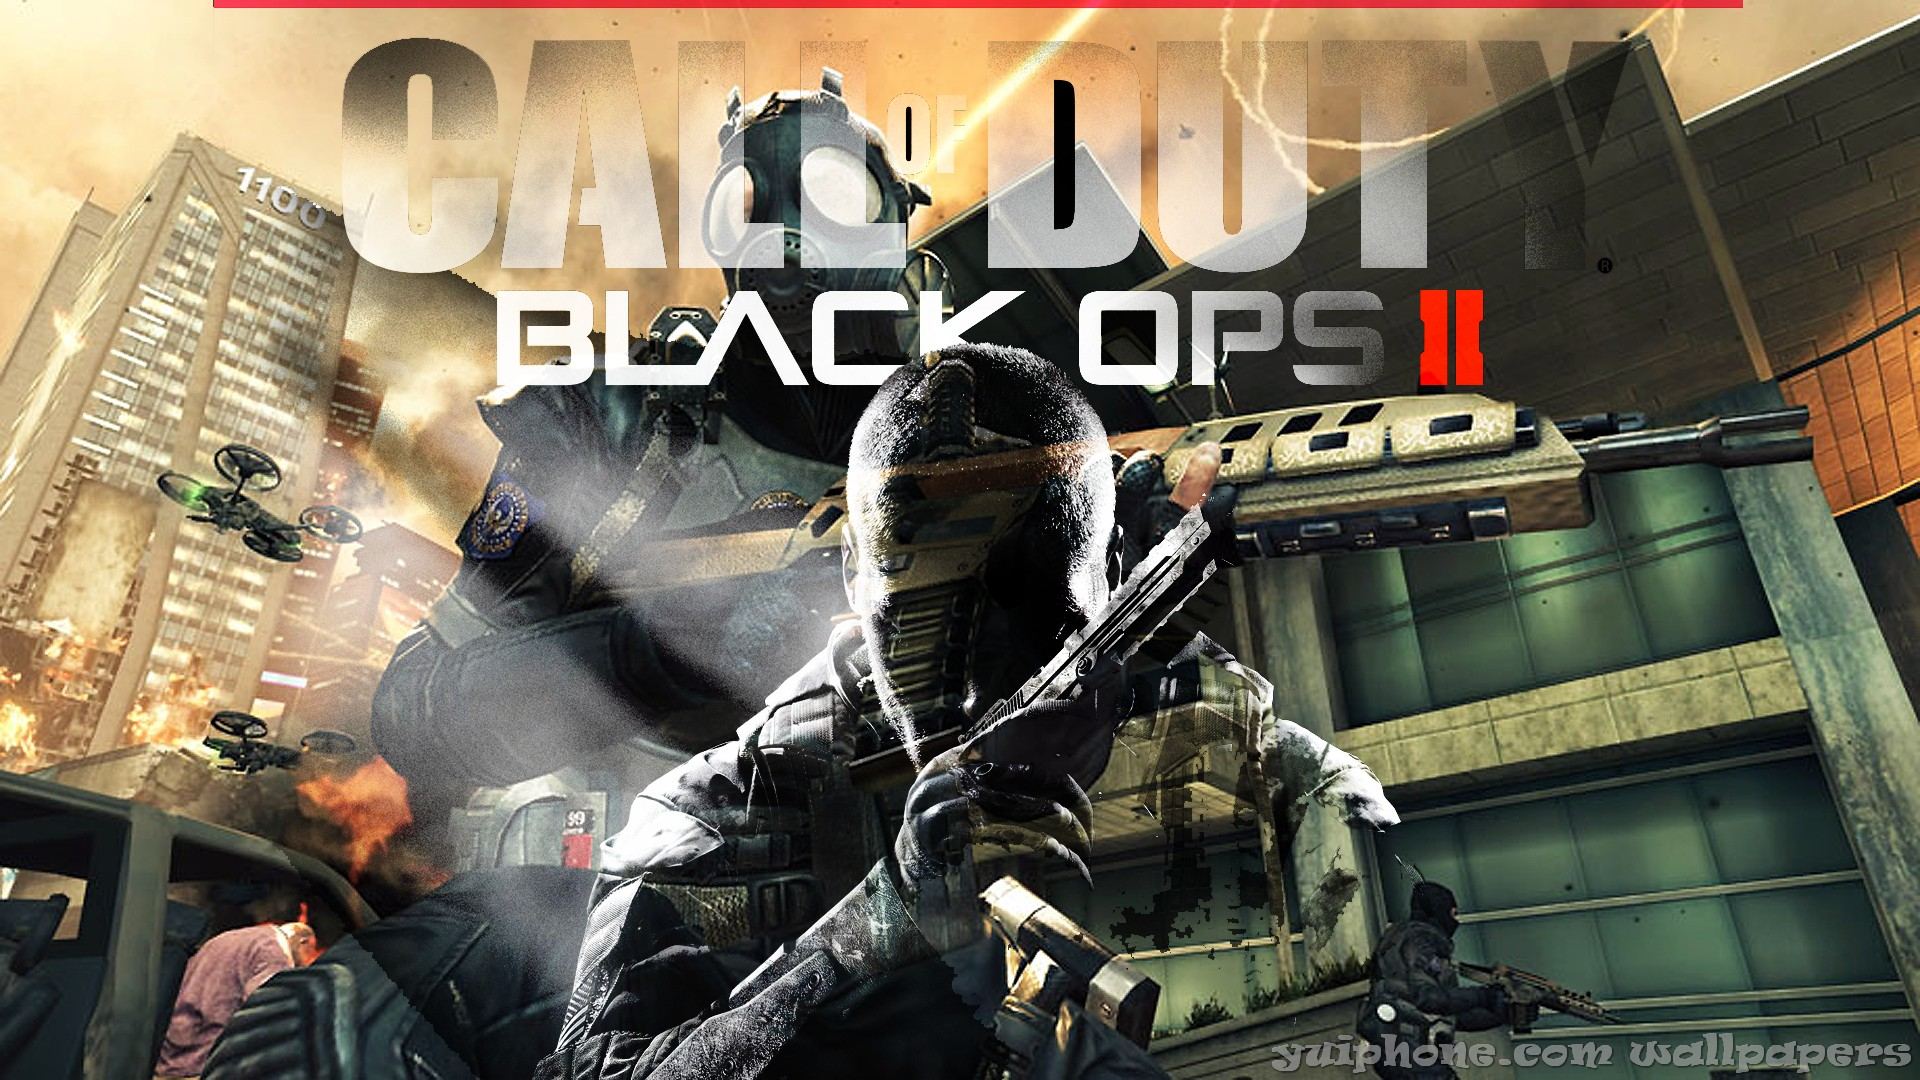 black ops 2 aimbot download 2013 xbox 360 ps3 pc